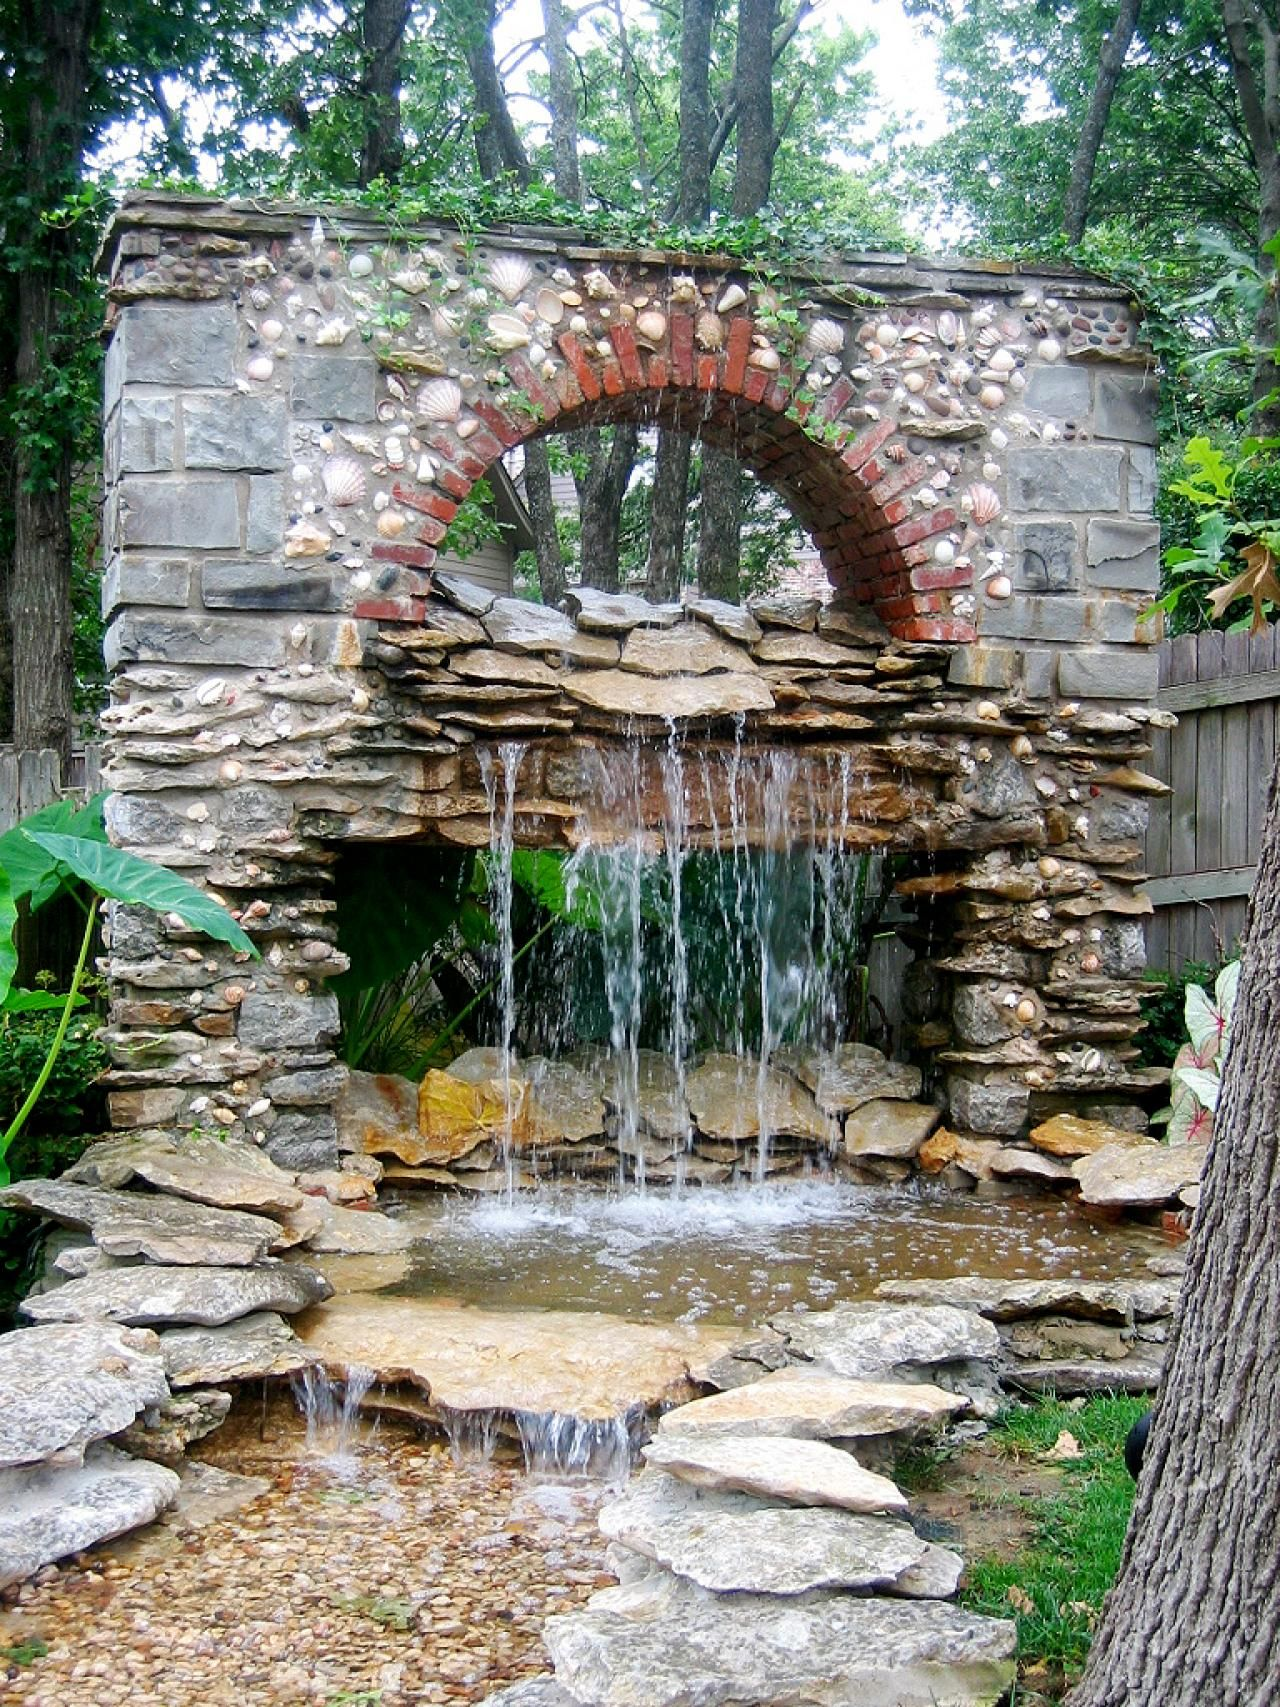 Homemade garden art ideas - Garden Fountains